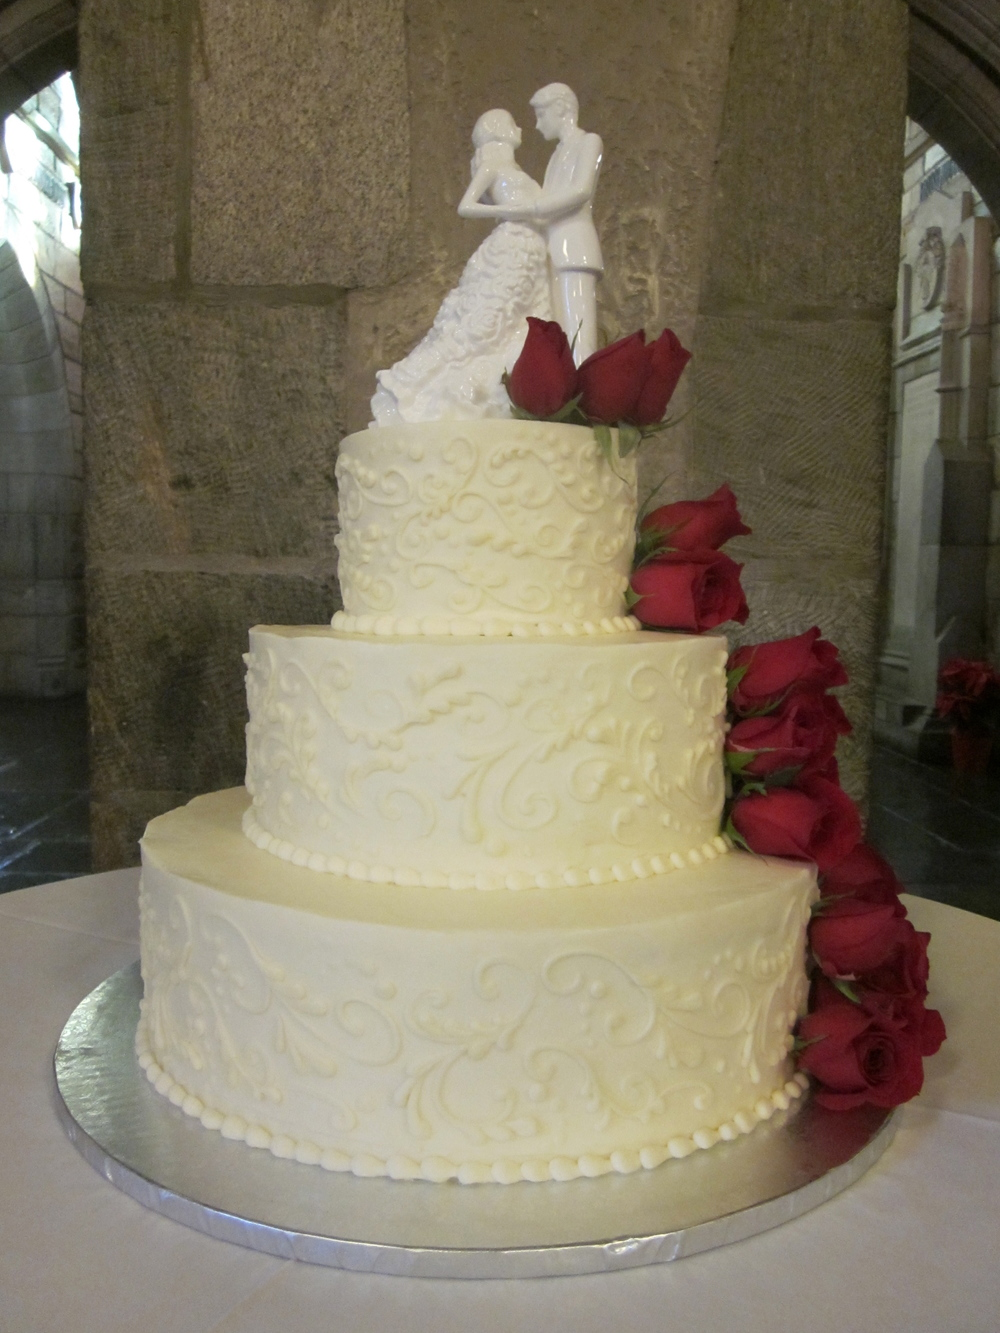 Wedding Cake at Christmas